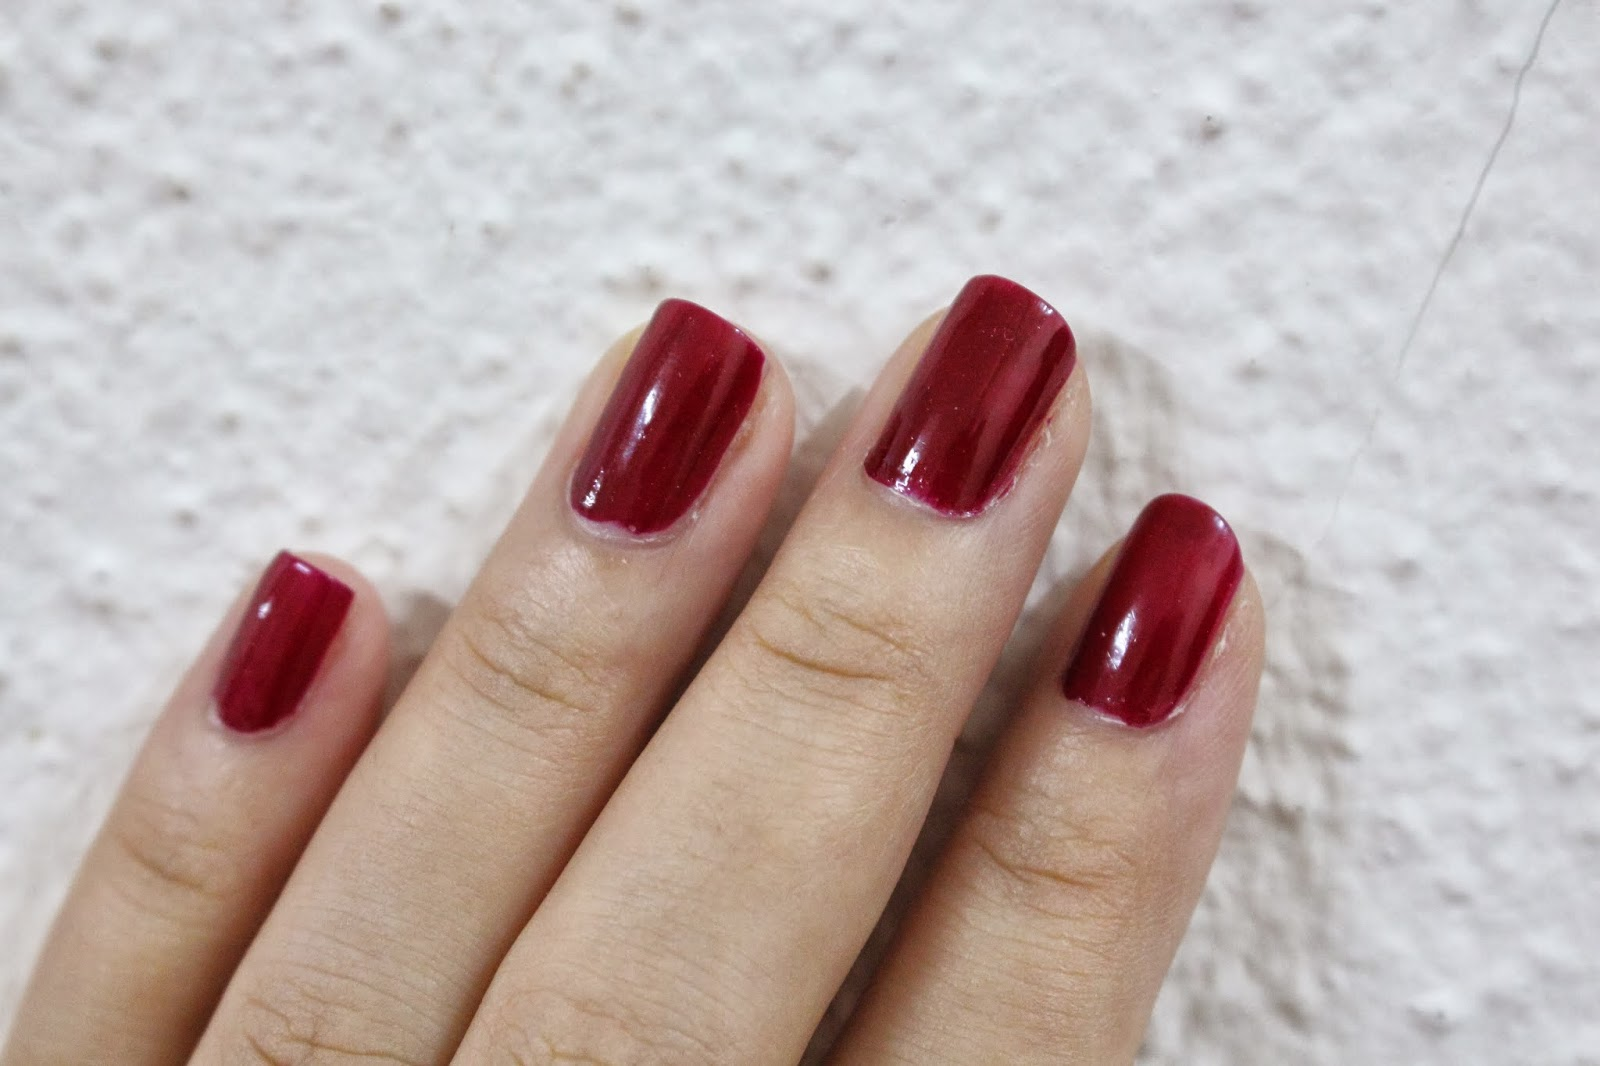 Maroon / Blood Red Nails